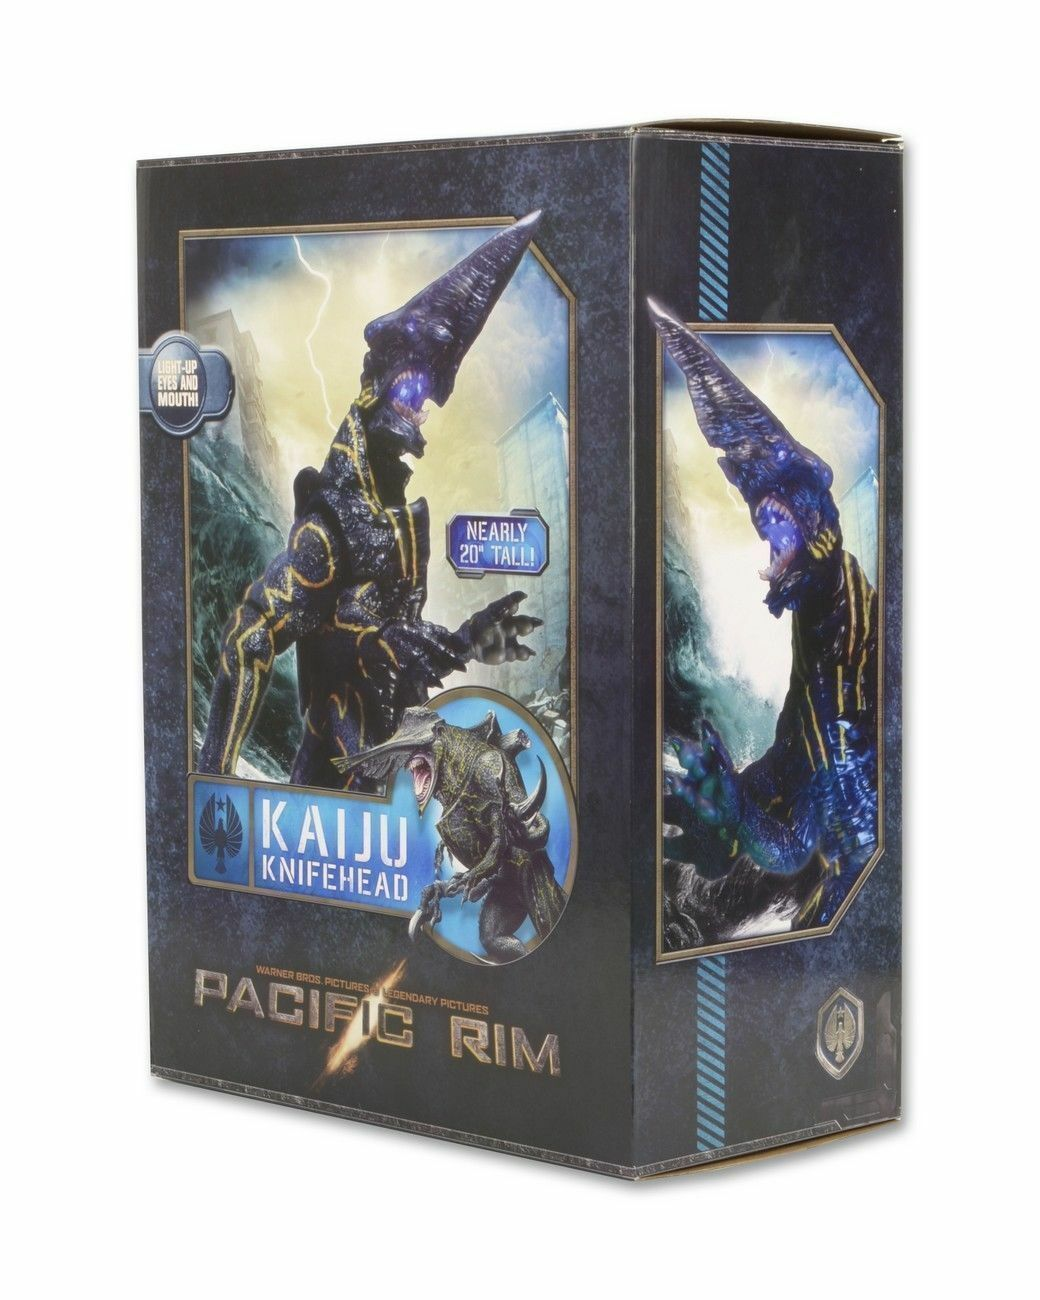 NECA Pacific Rim: KAIJU 20 inch Knifehead Action Figure NEW